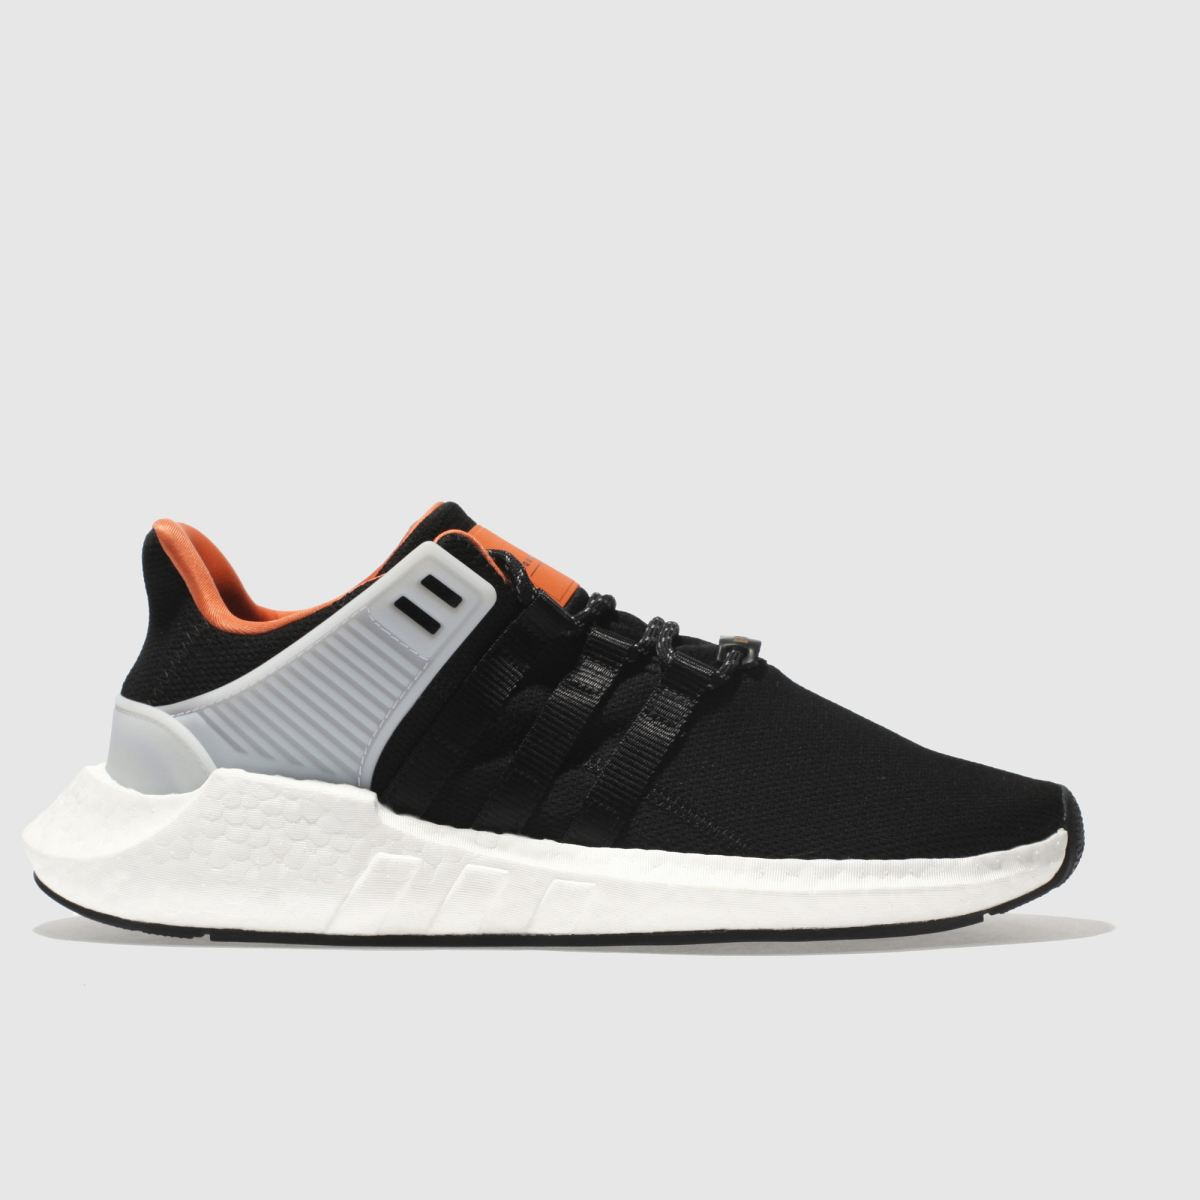 Adidas Black Eqt Support 93/17 Trainers